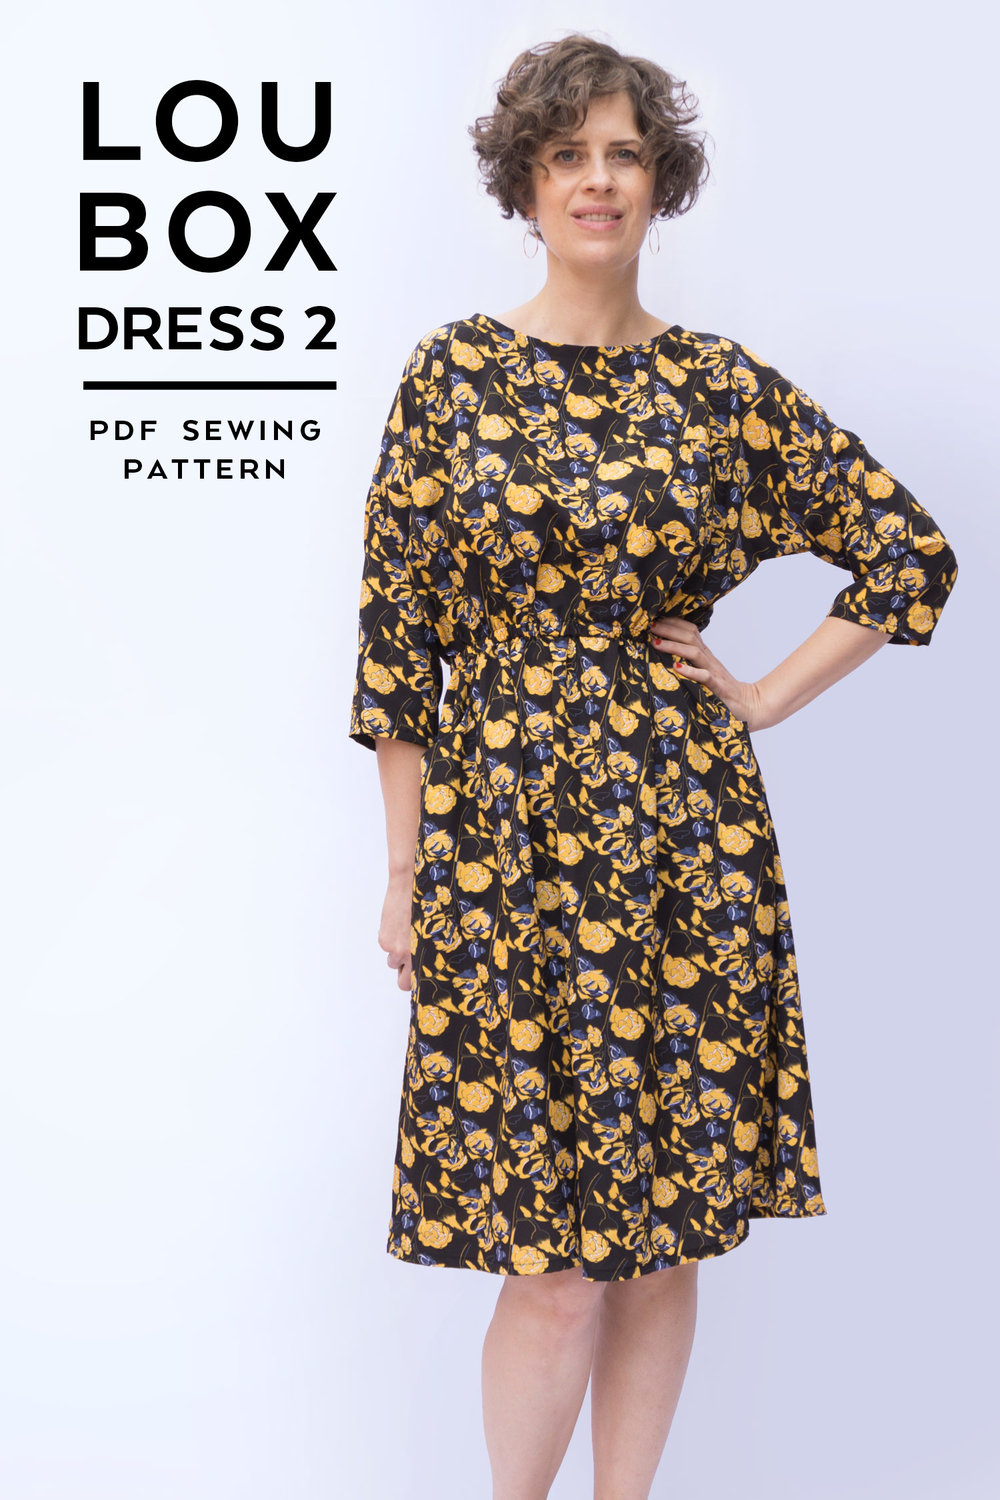 Introducing the Lou Box Dress 2 | Sew DIY